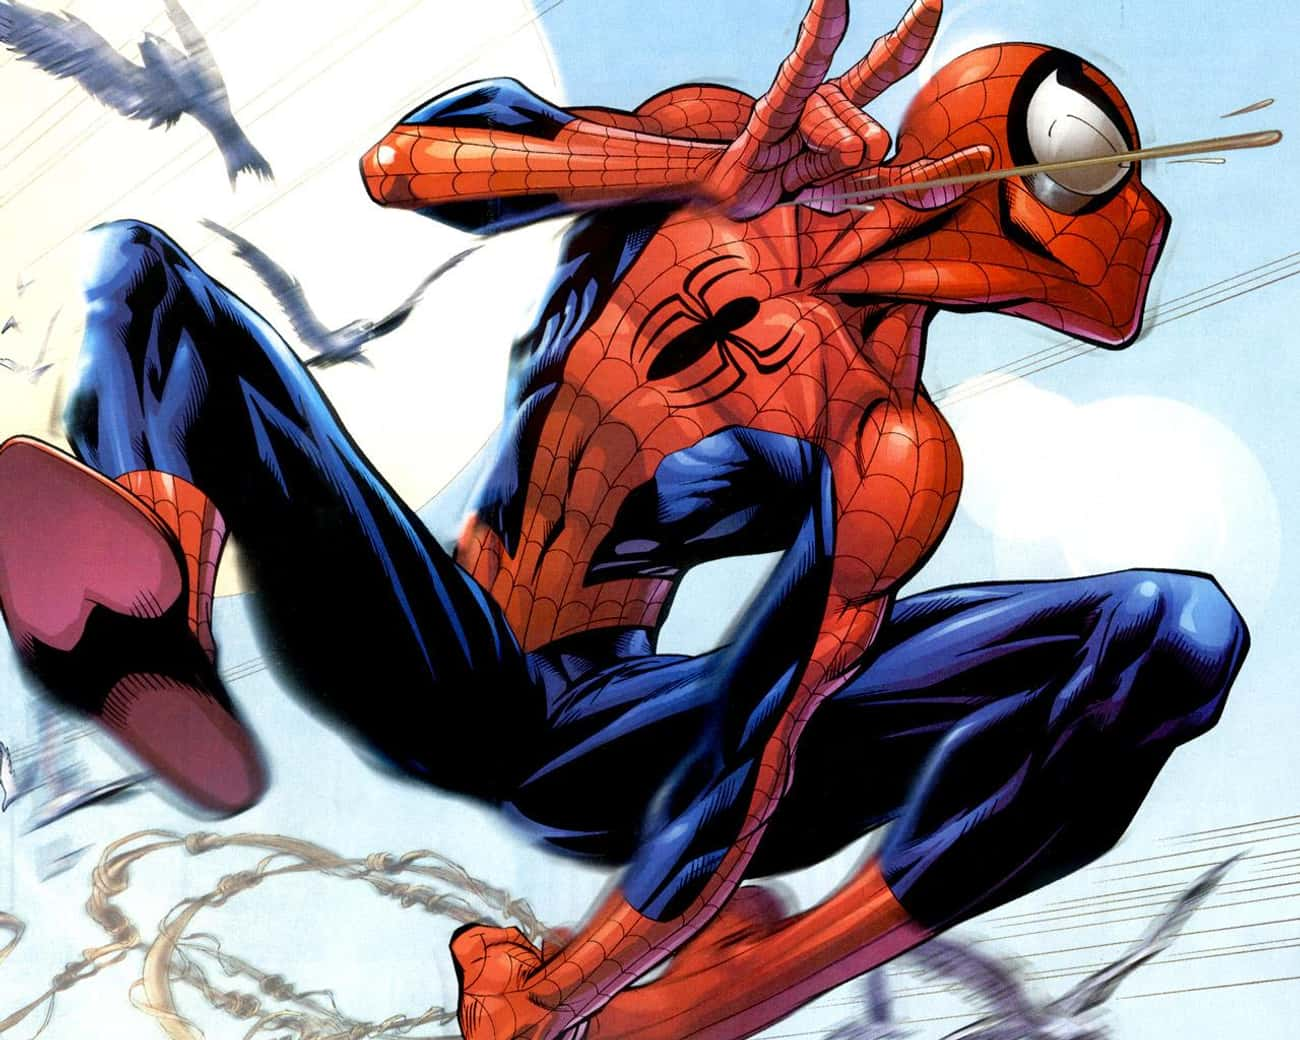 Spider-Man is listed (or ranked) 3 on the list The Best Superhero Mentors